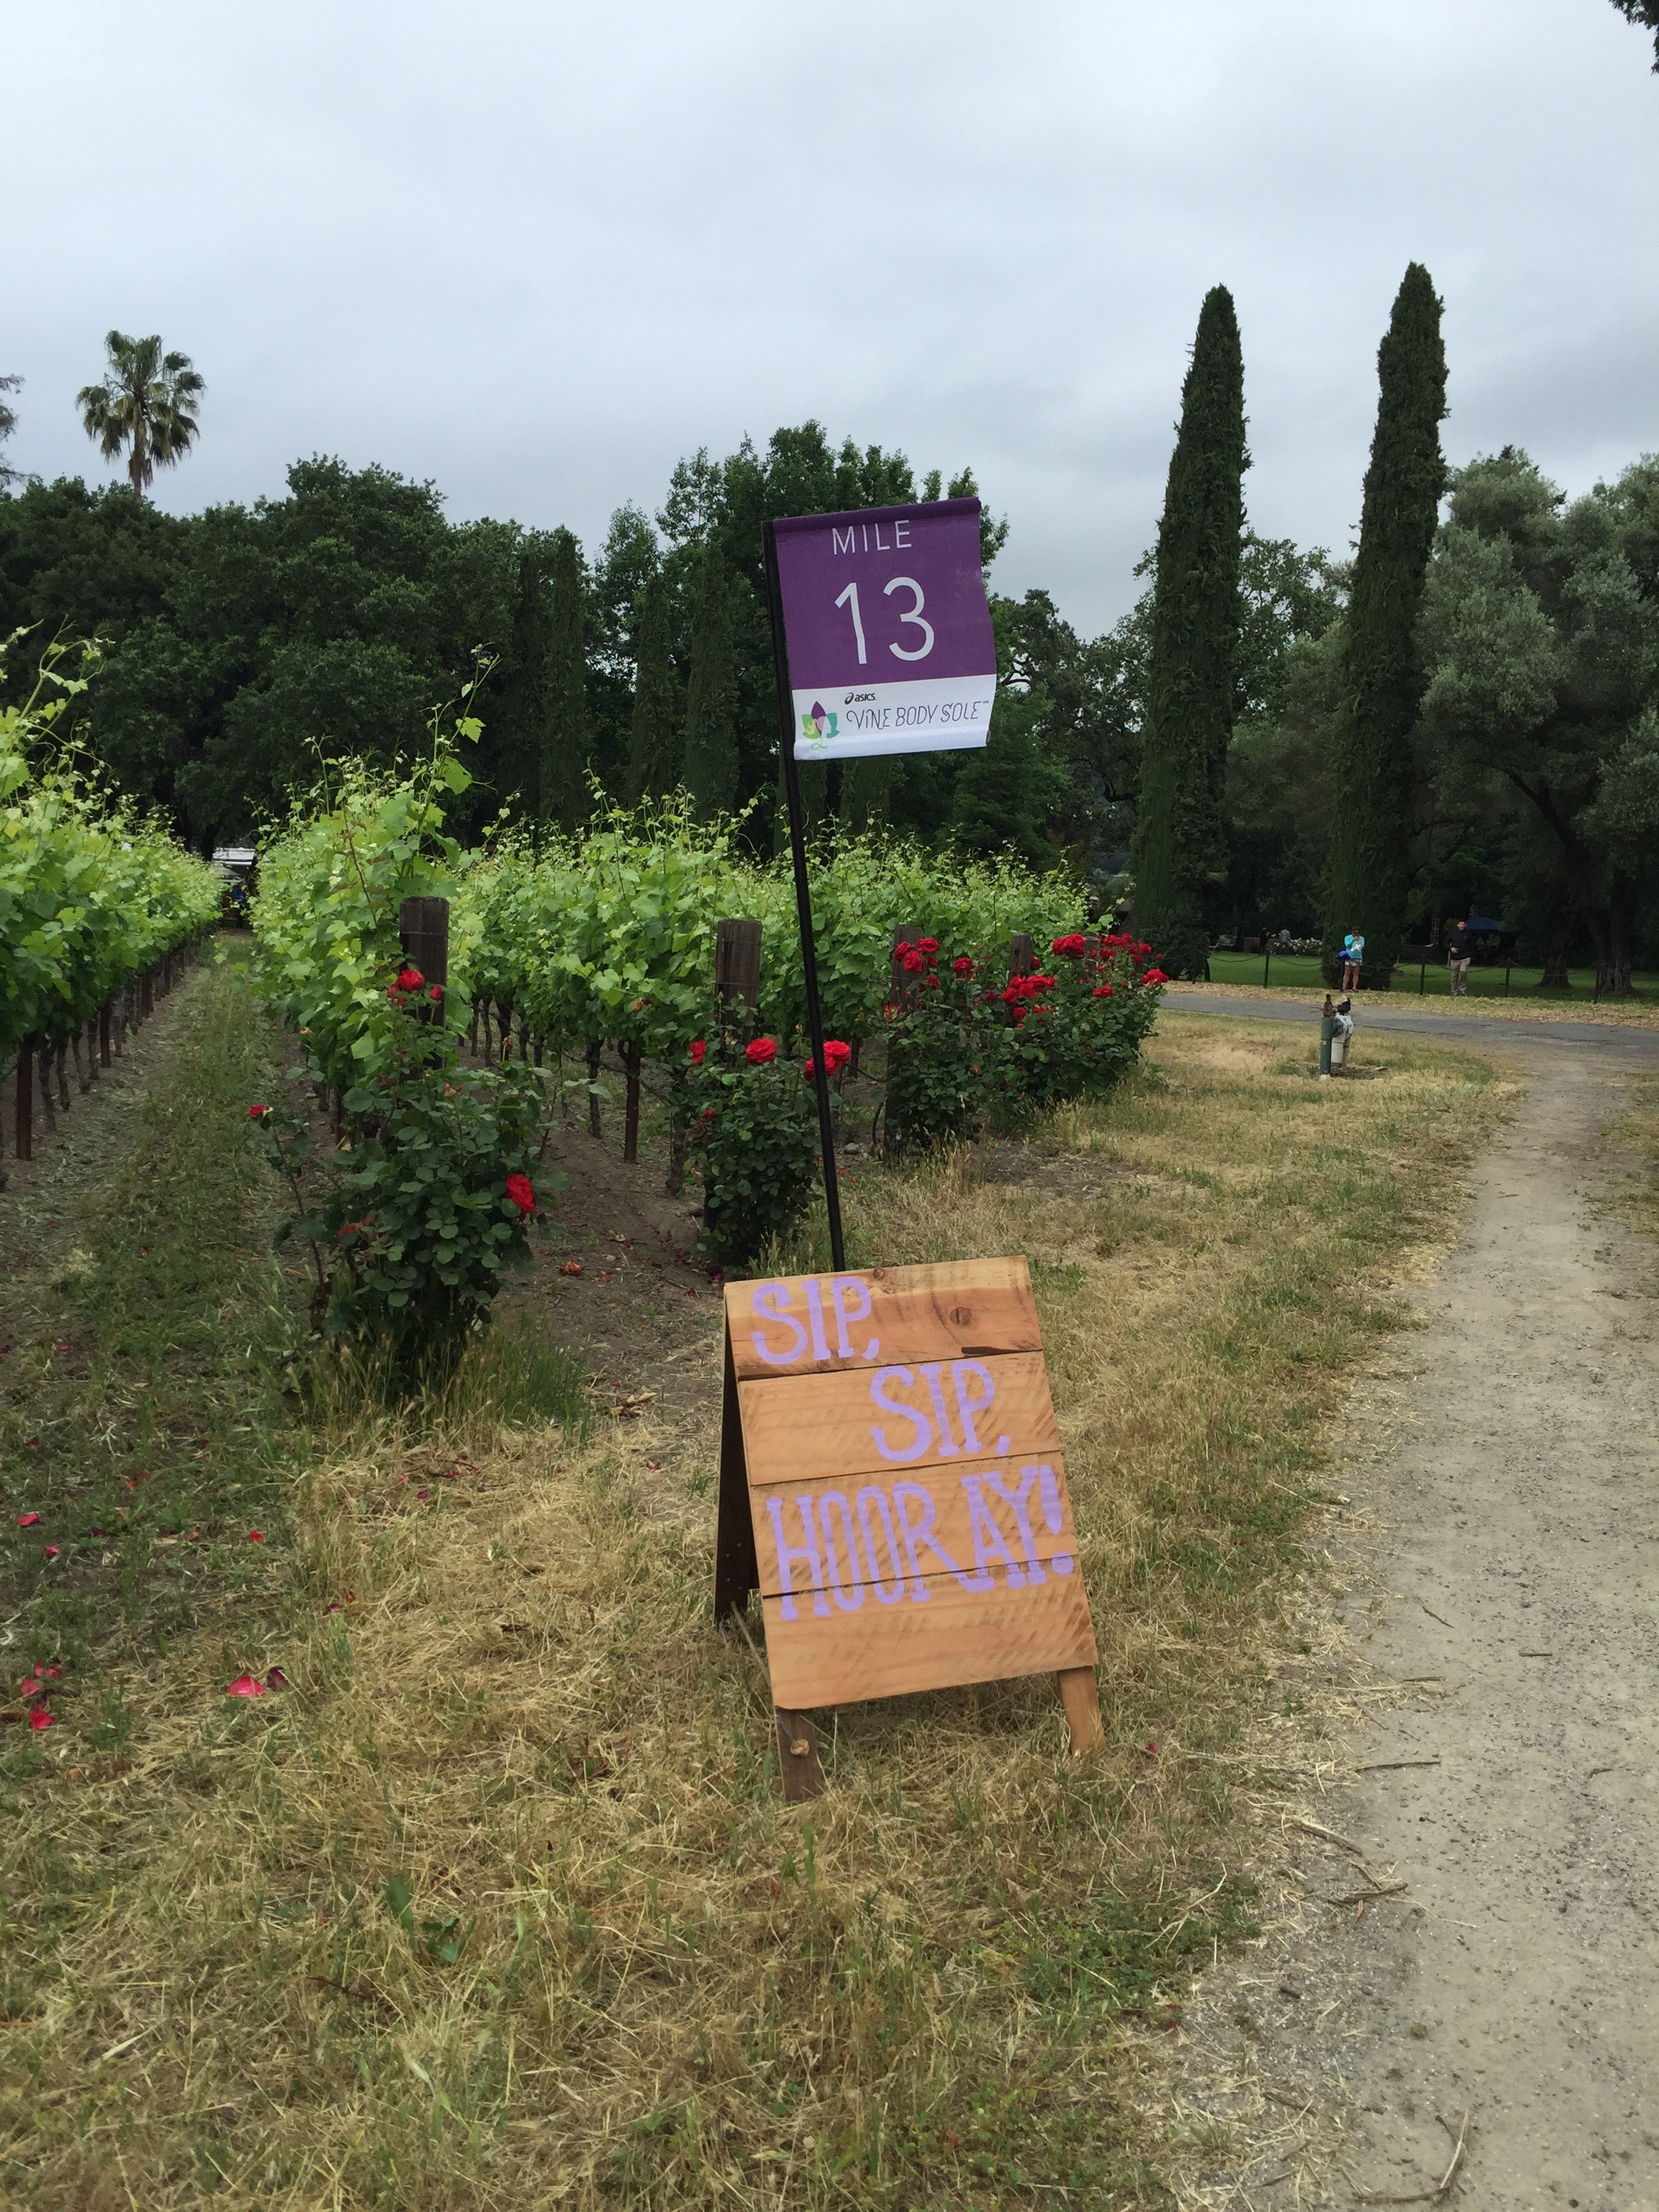 The purple is hard to read (hence why I didn't share the other mile signs) but mile 13, just around the corner...